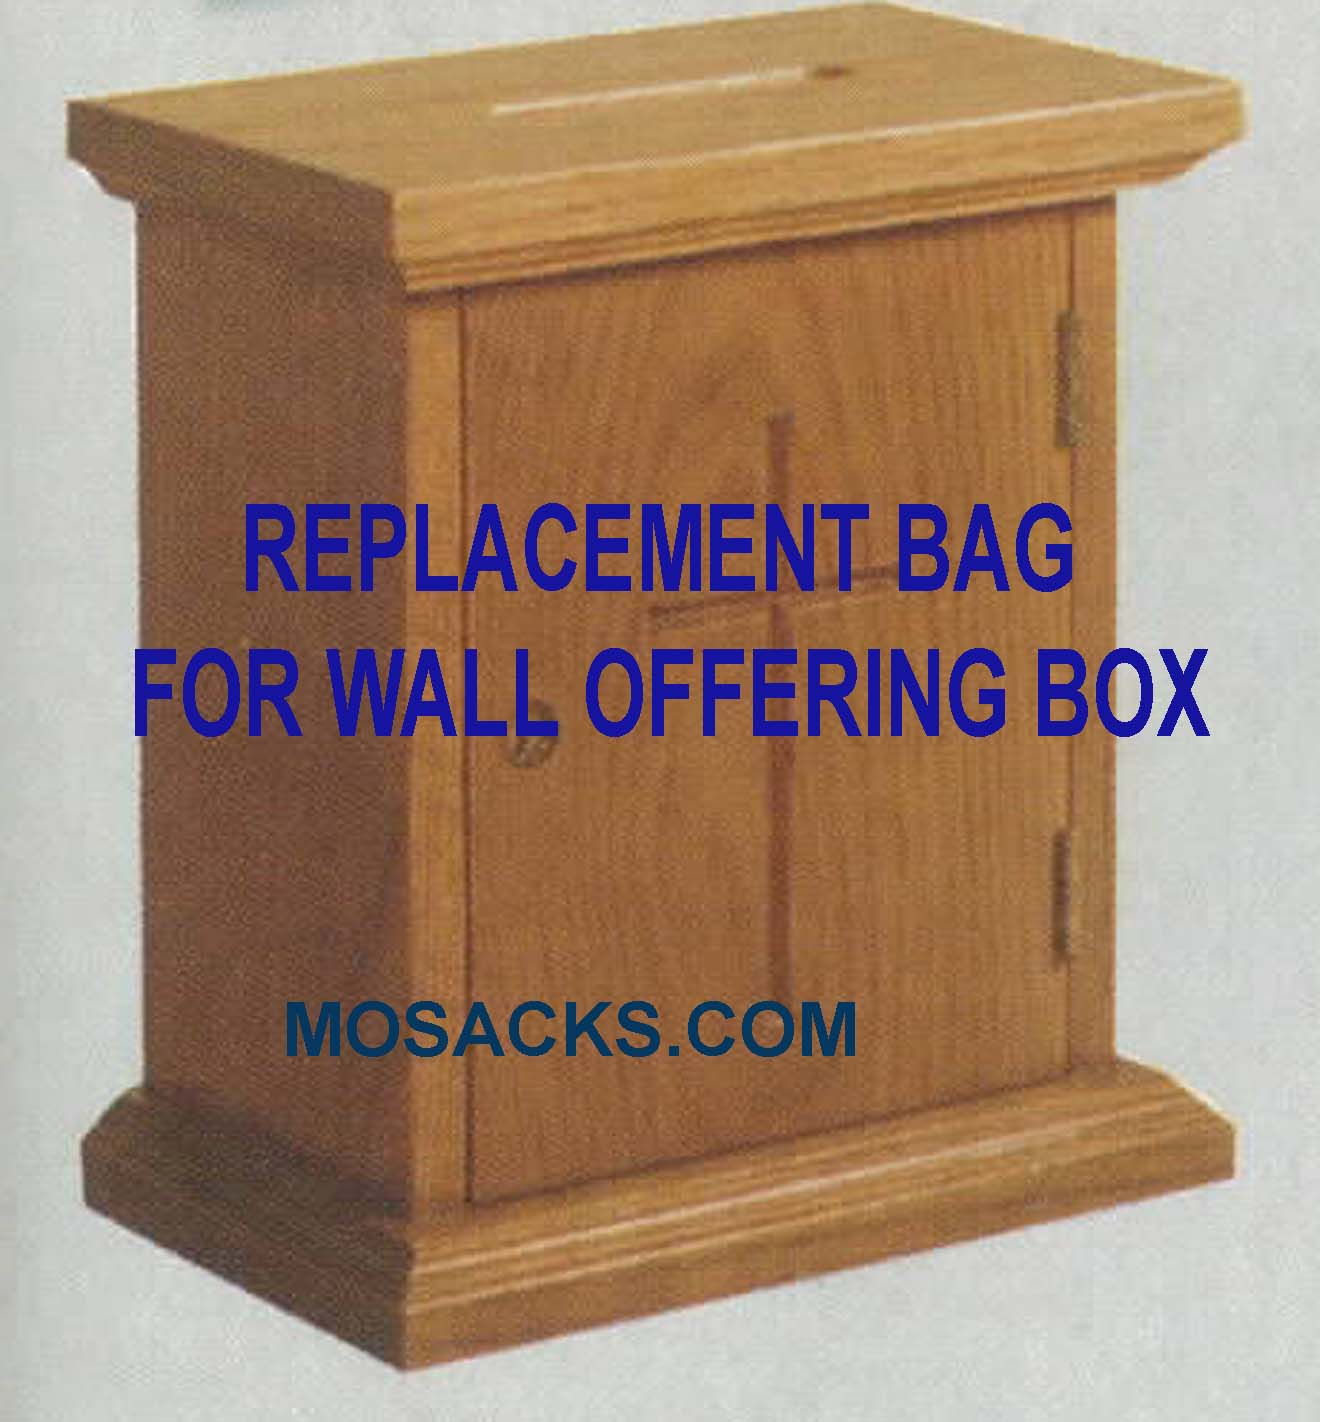 "Replacement Bag for Wall Offering Box 10"" w x 6"" d x 11"" h 401B"